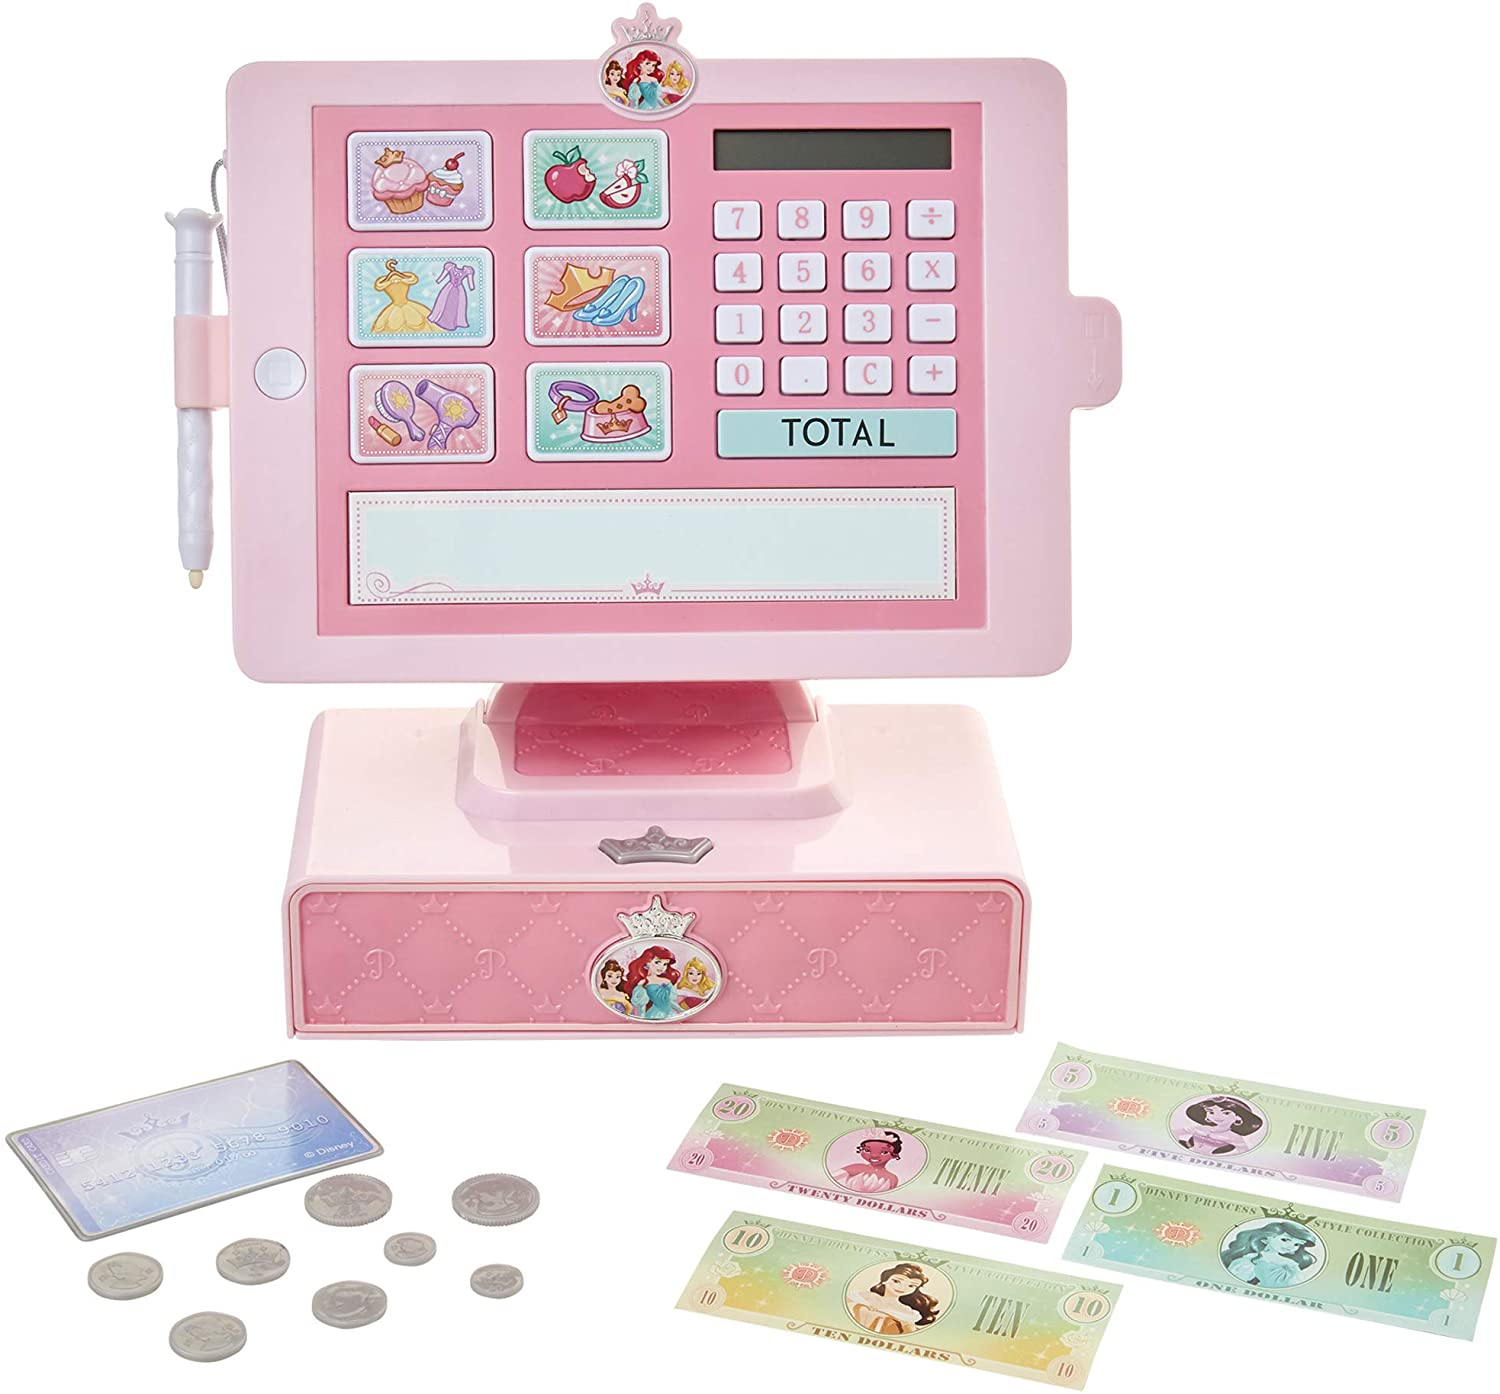 Disney Princess Style Collection Shop 'N Play Cash Register with Sounds & Phrases for Girls Ages 3+